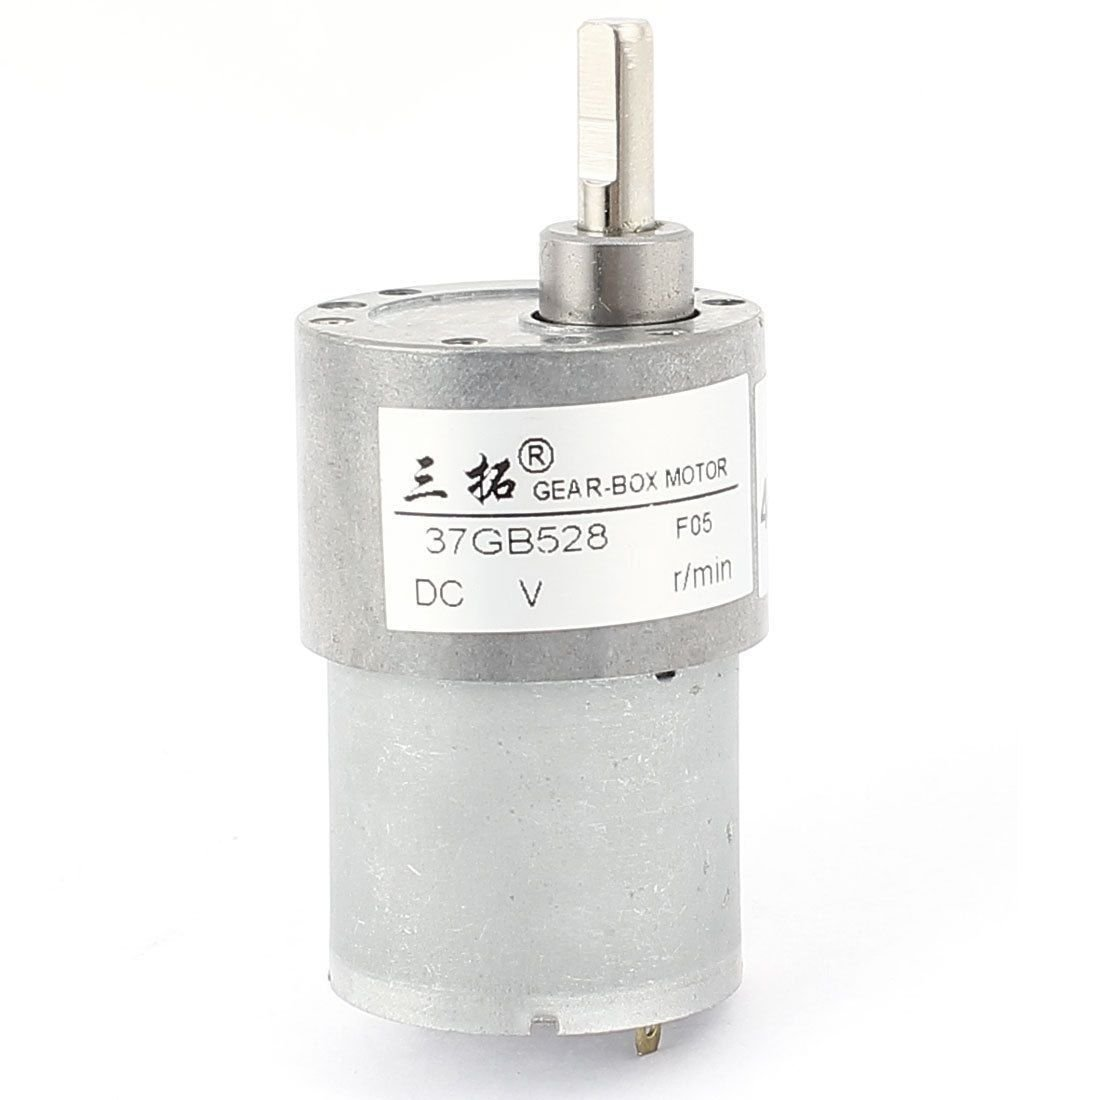 DC 24V 100RPM 0.15A 1.4KG.cm DC Gear Box Reducer Variable Speed Motor Reversible